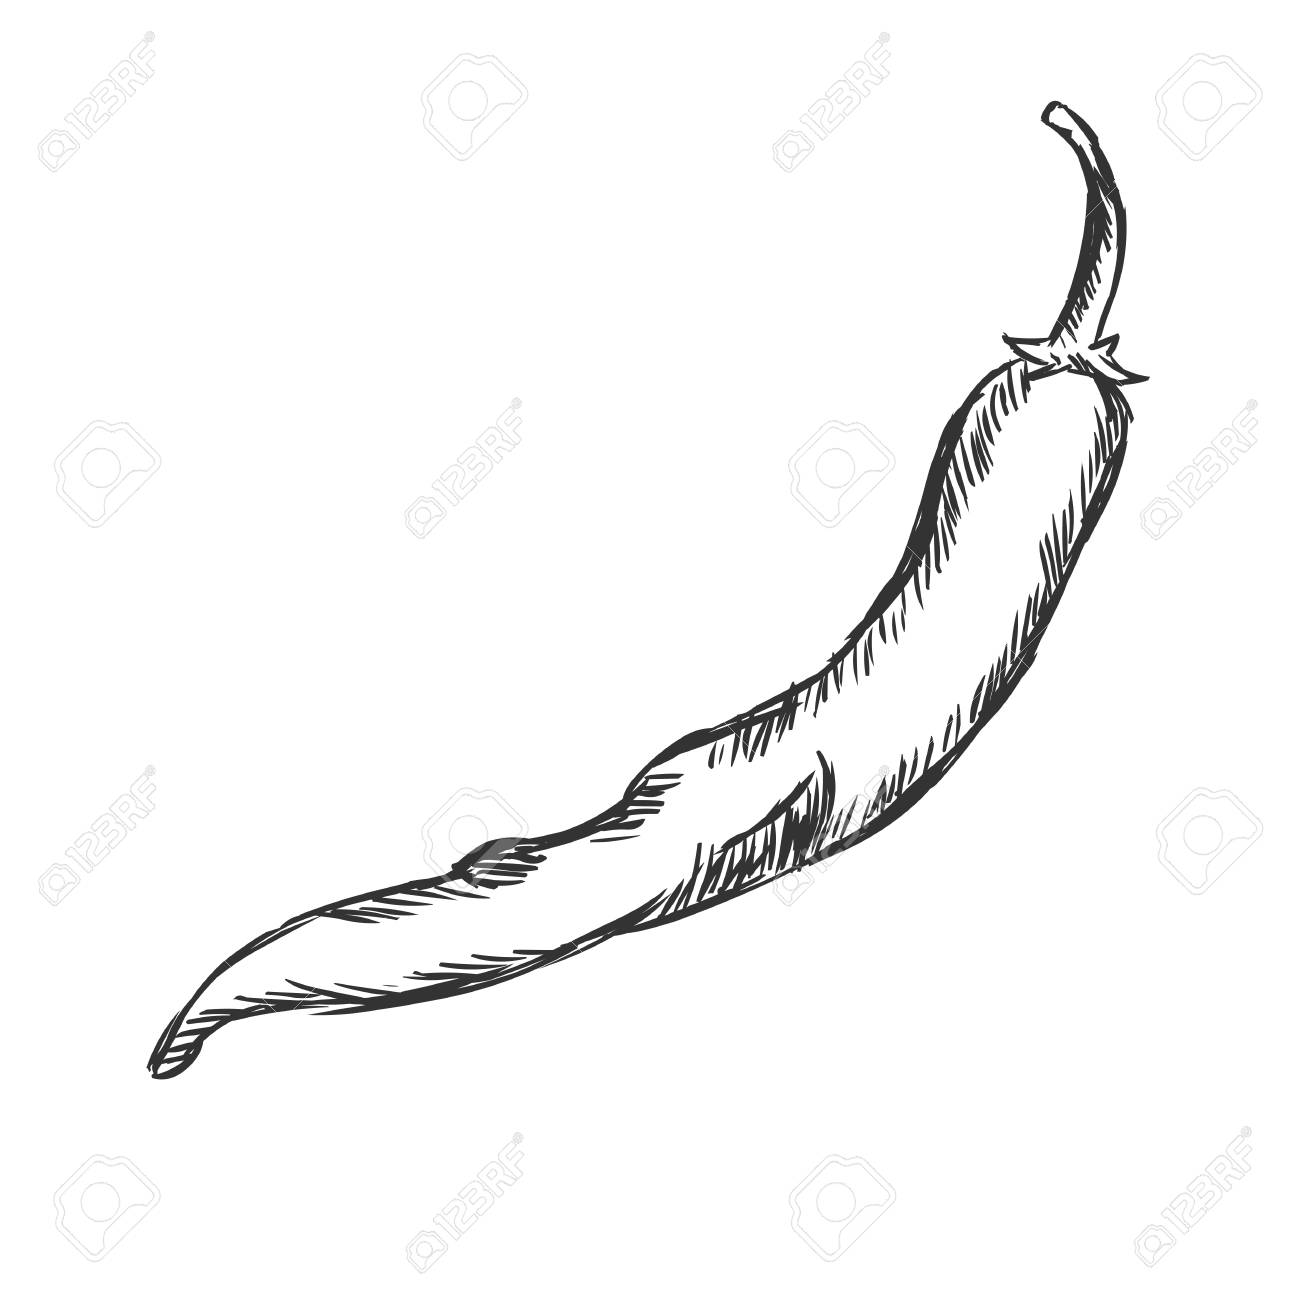 Vector Single Sketch Chili Pepper on White Background